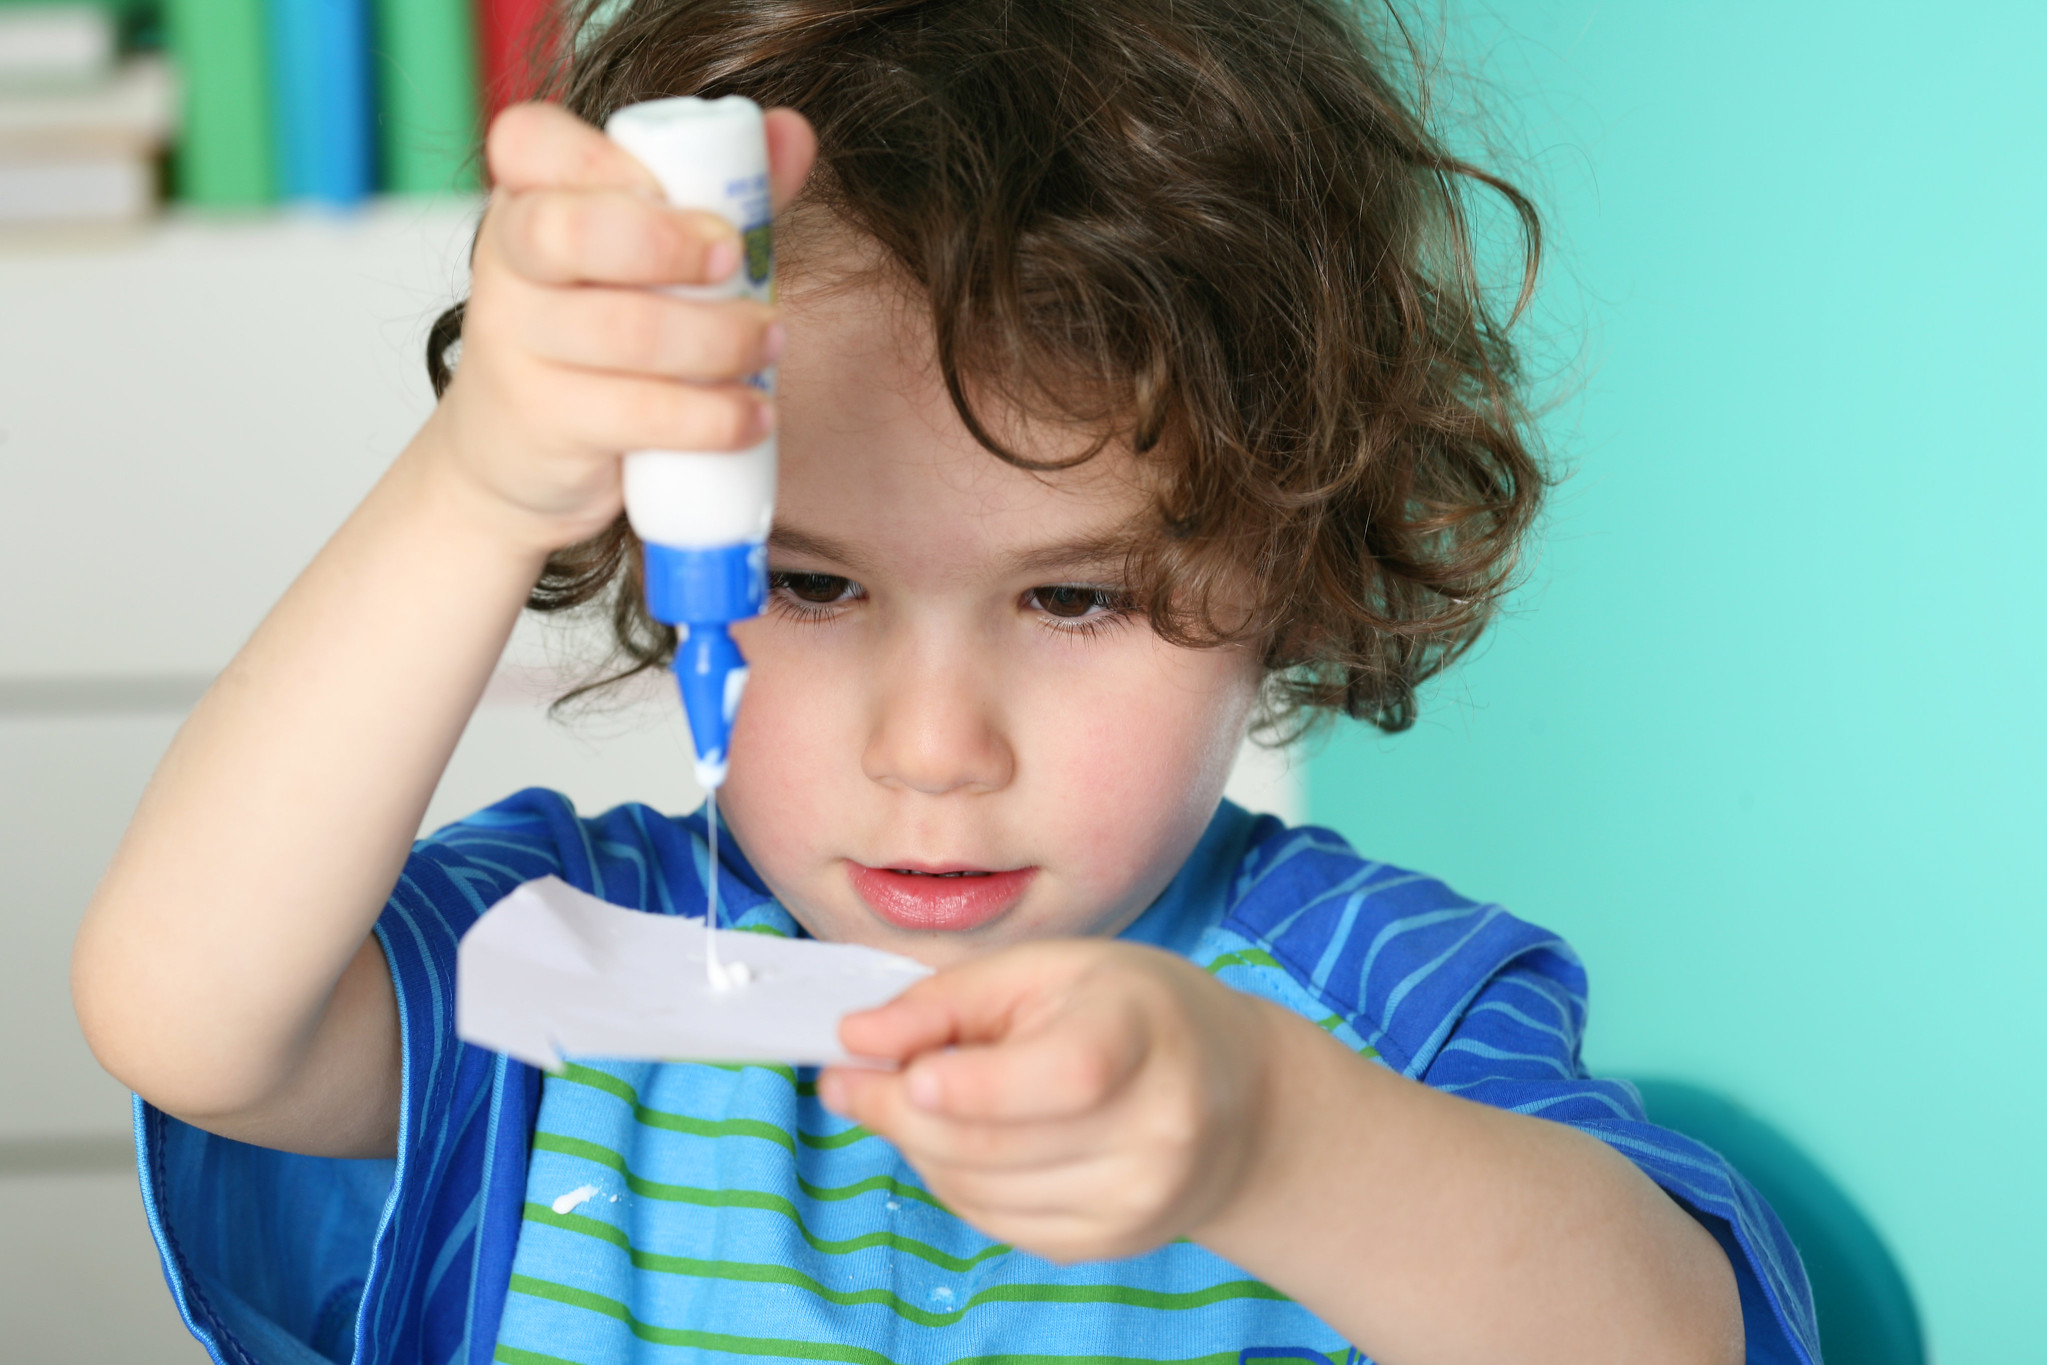 child using glue for crafts